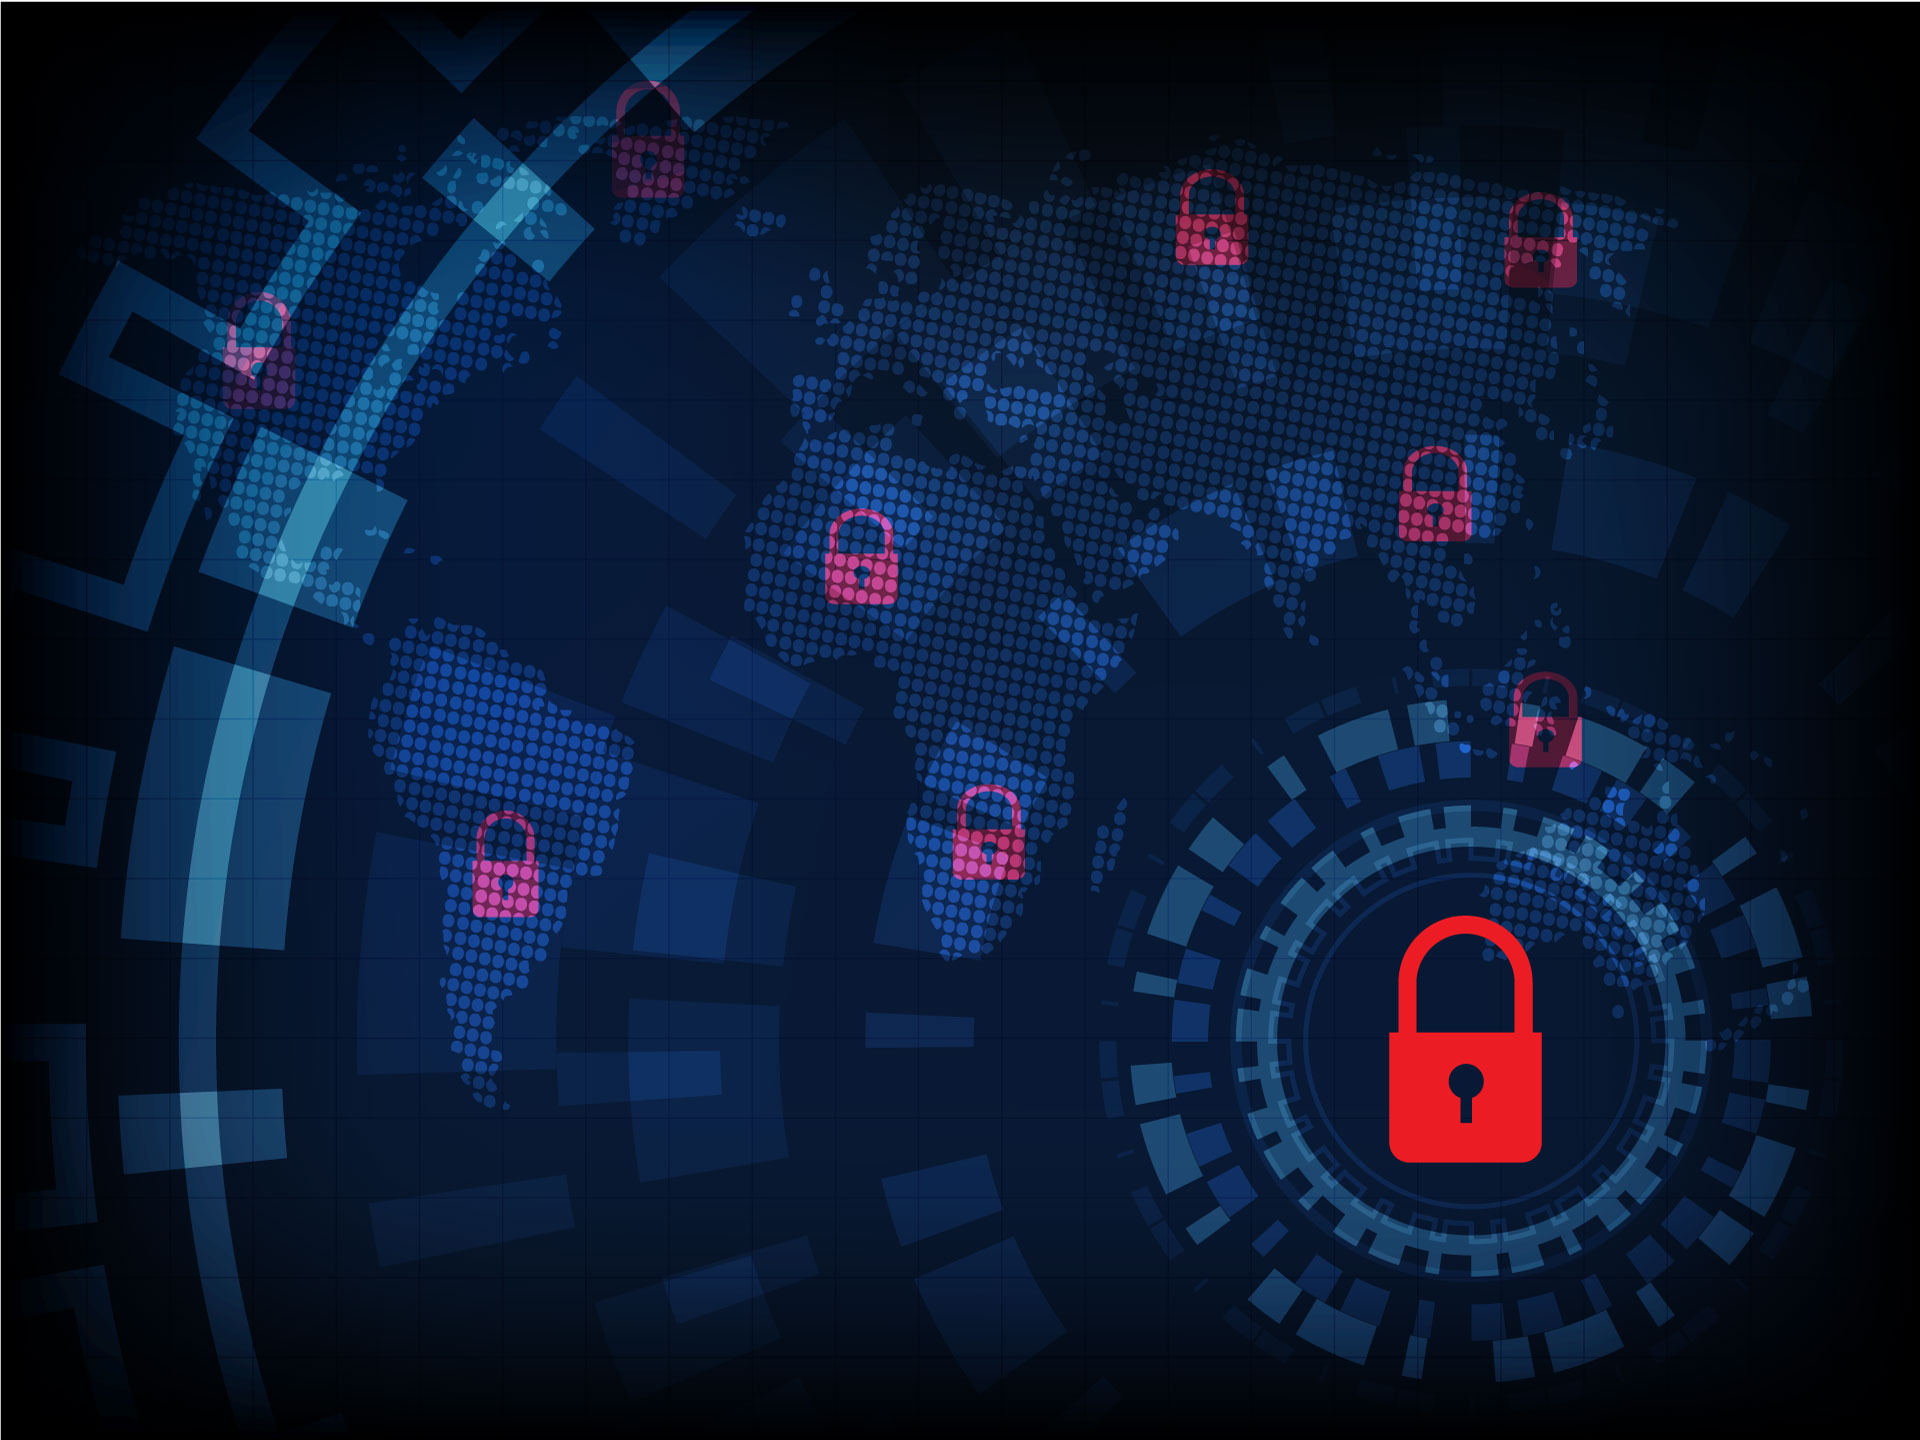 NotPetya act of war exclusion spreads to second insurer